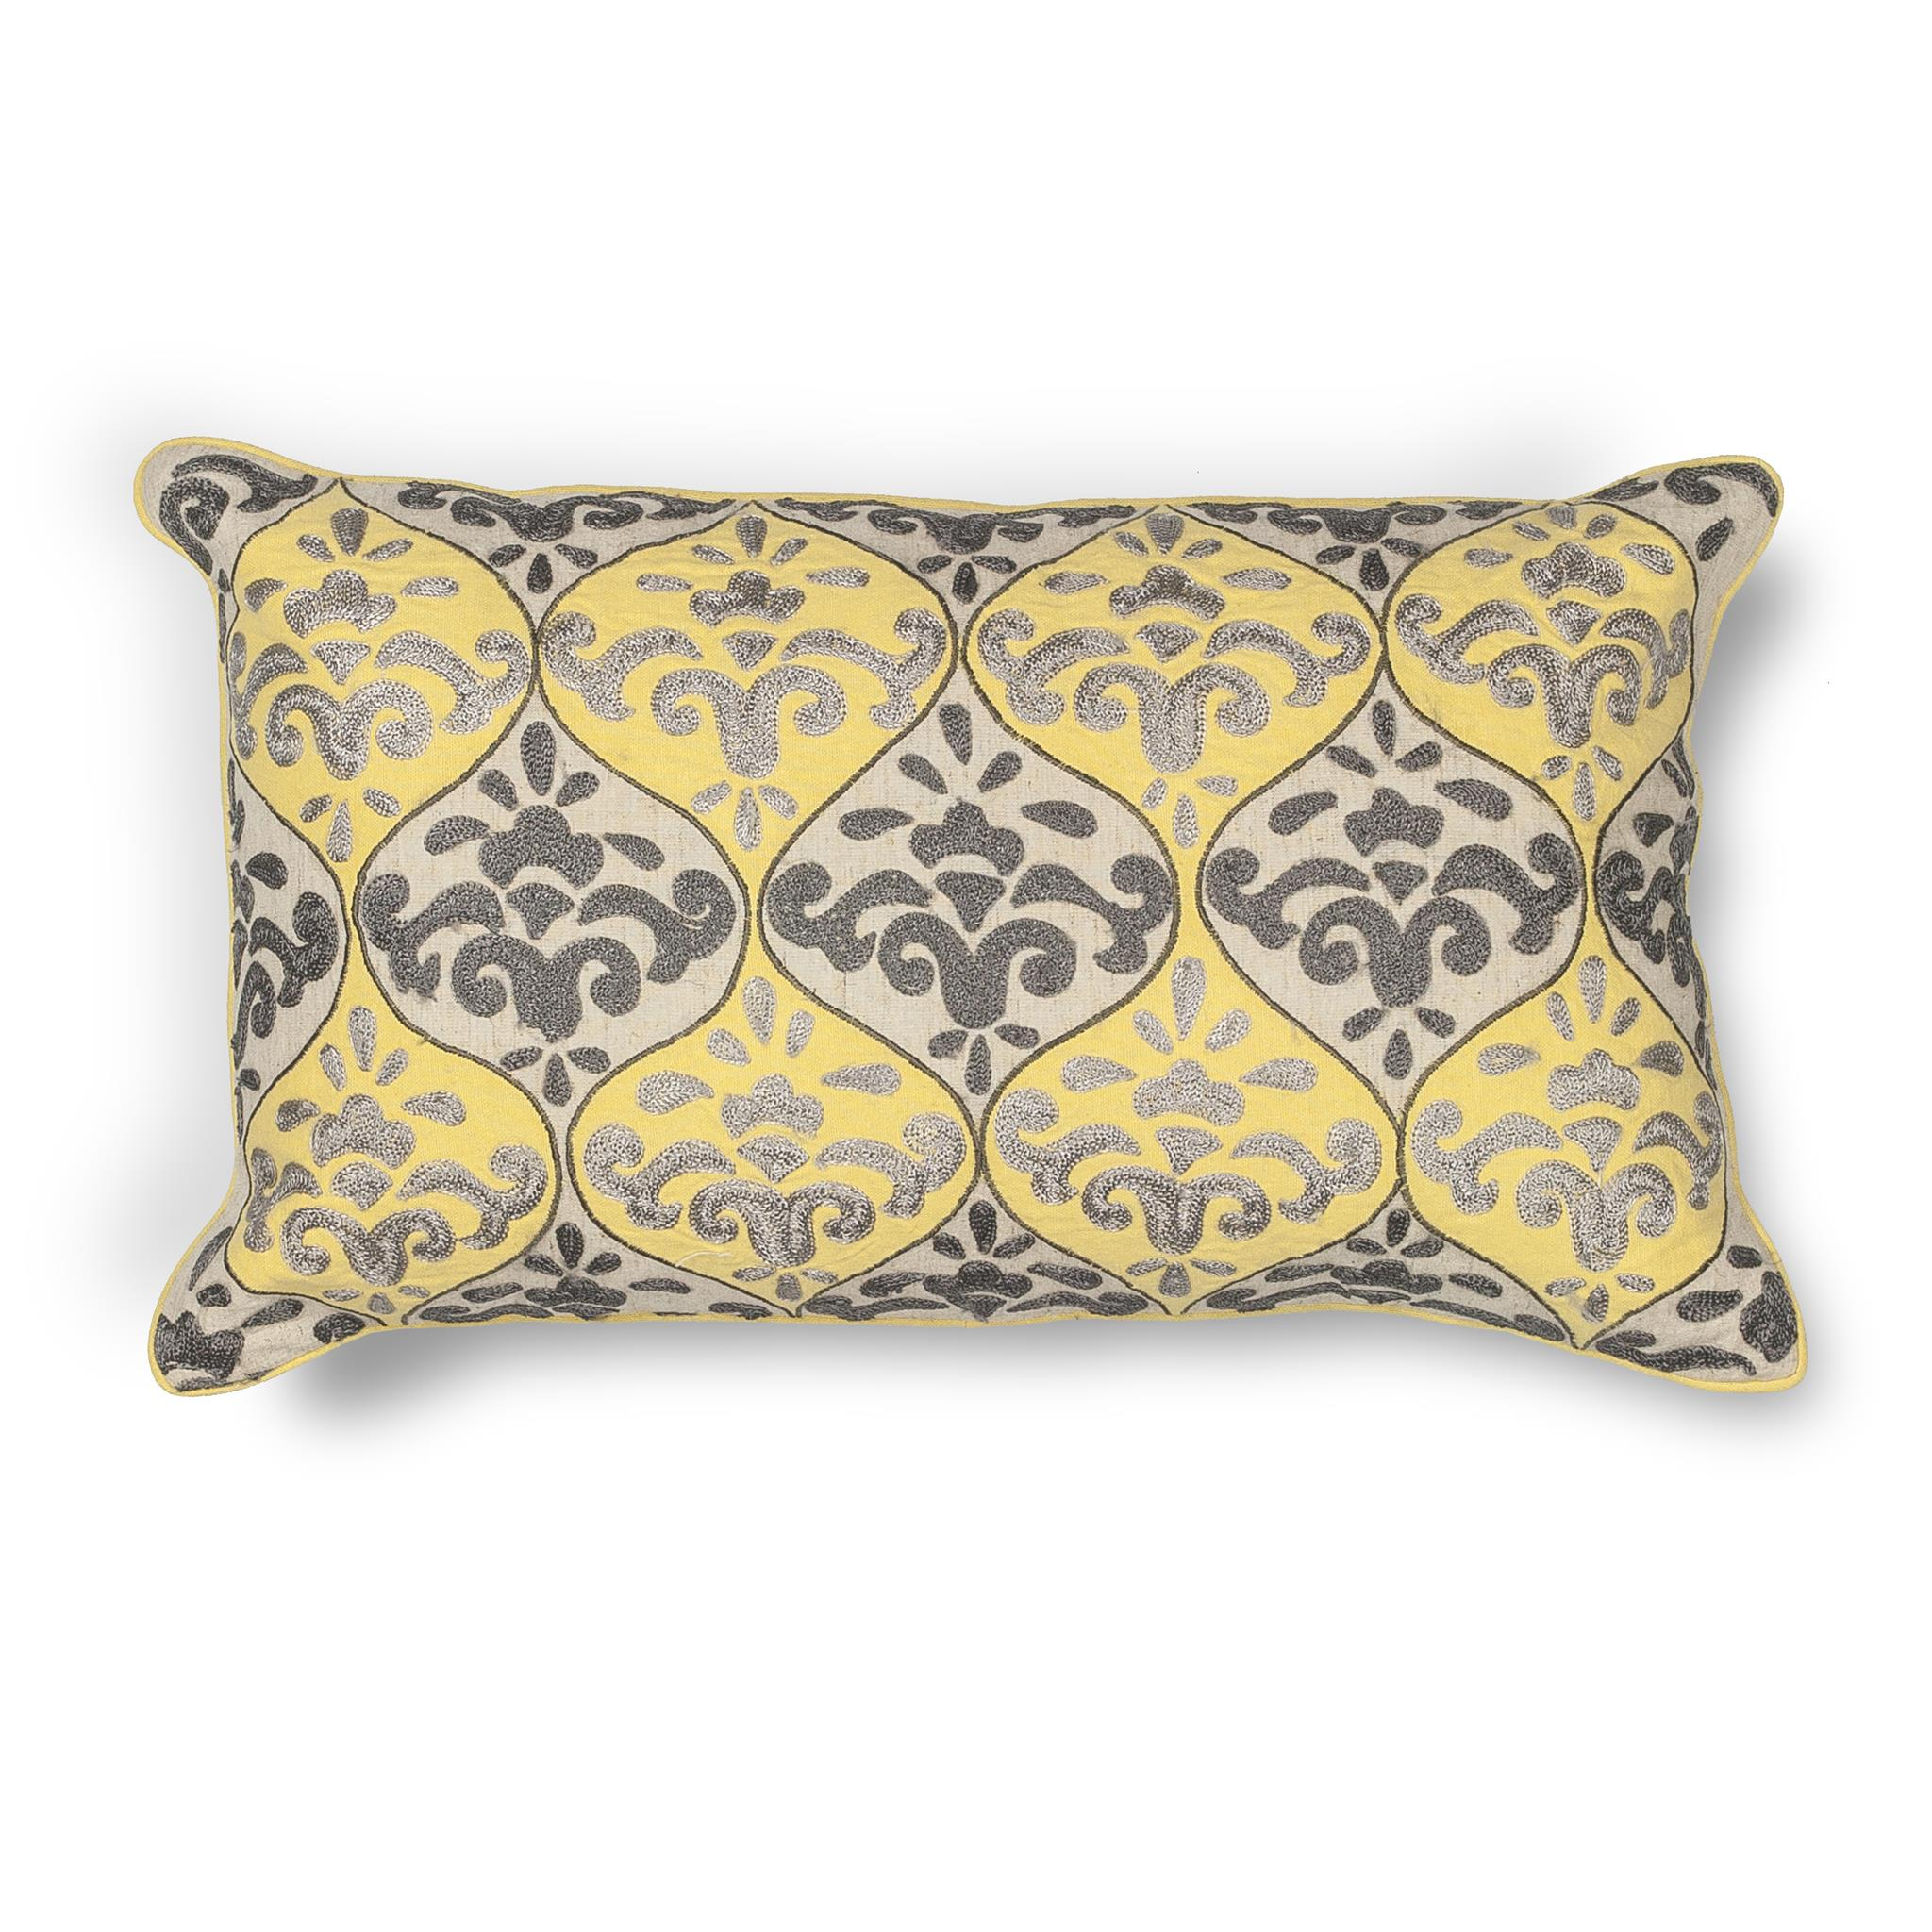 L221 Donny Osmond Home Yellow-Grey Damask Pillow